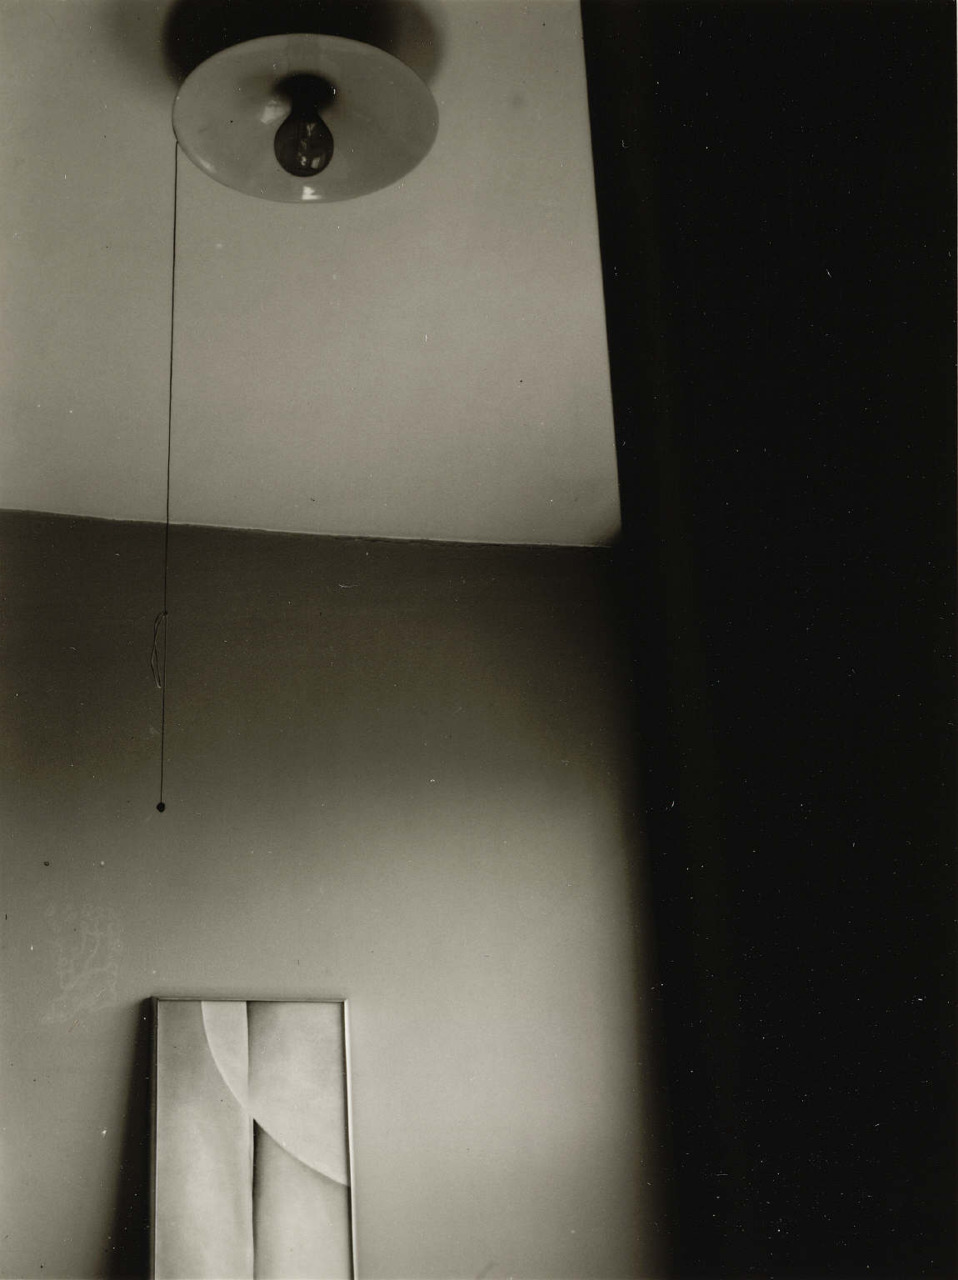 Georgia O'Keeffe Painting with Light Bulb, from Selected Photographs: 1932-1952                                                                                                                                                                                                                                                                                                         Artist:                                                                                                                                Dorothy Norman link